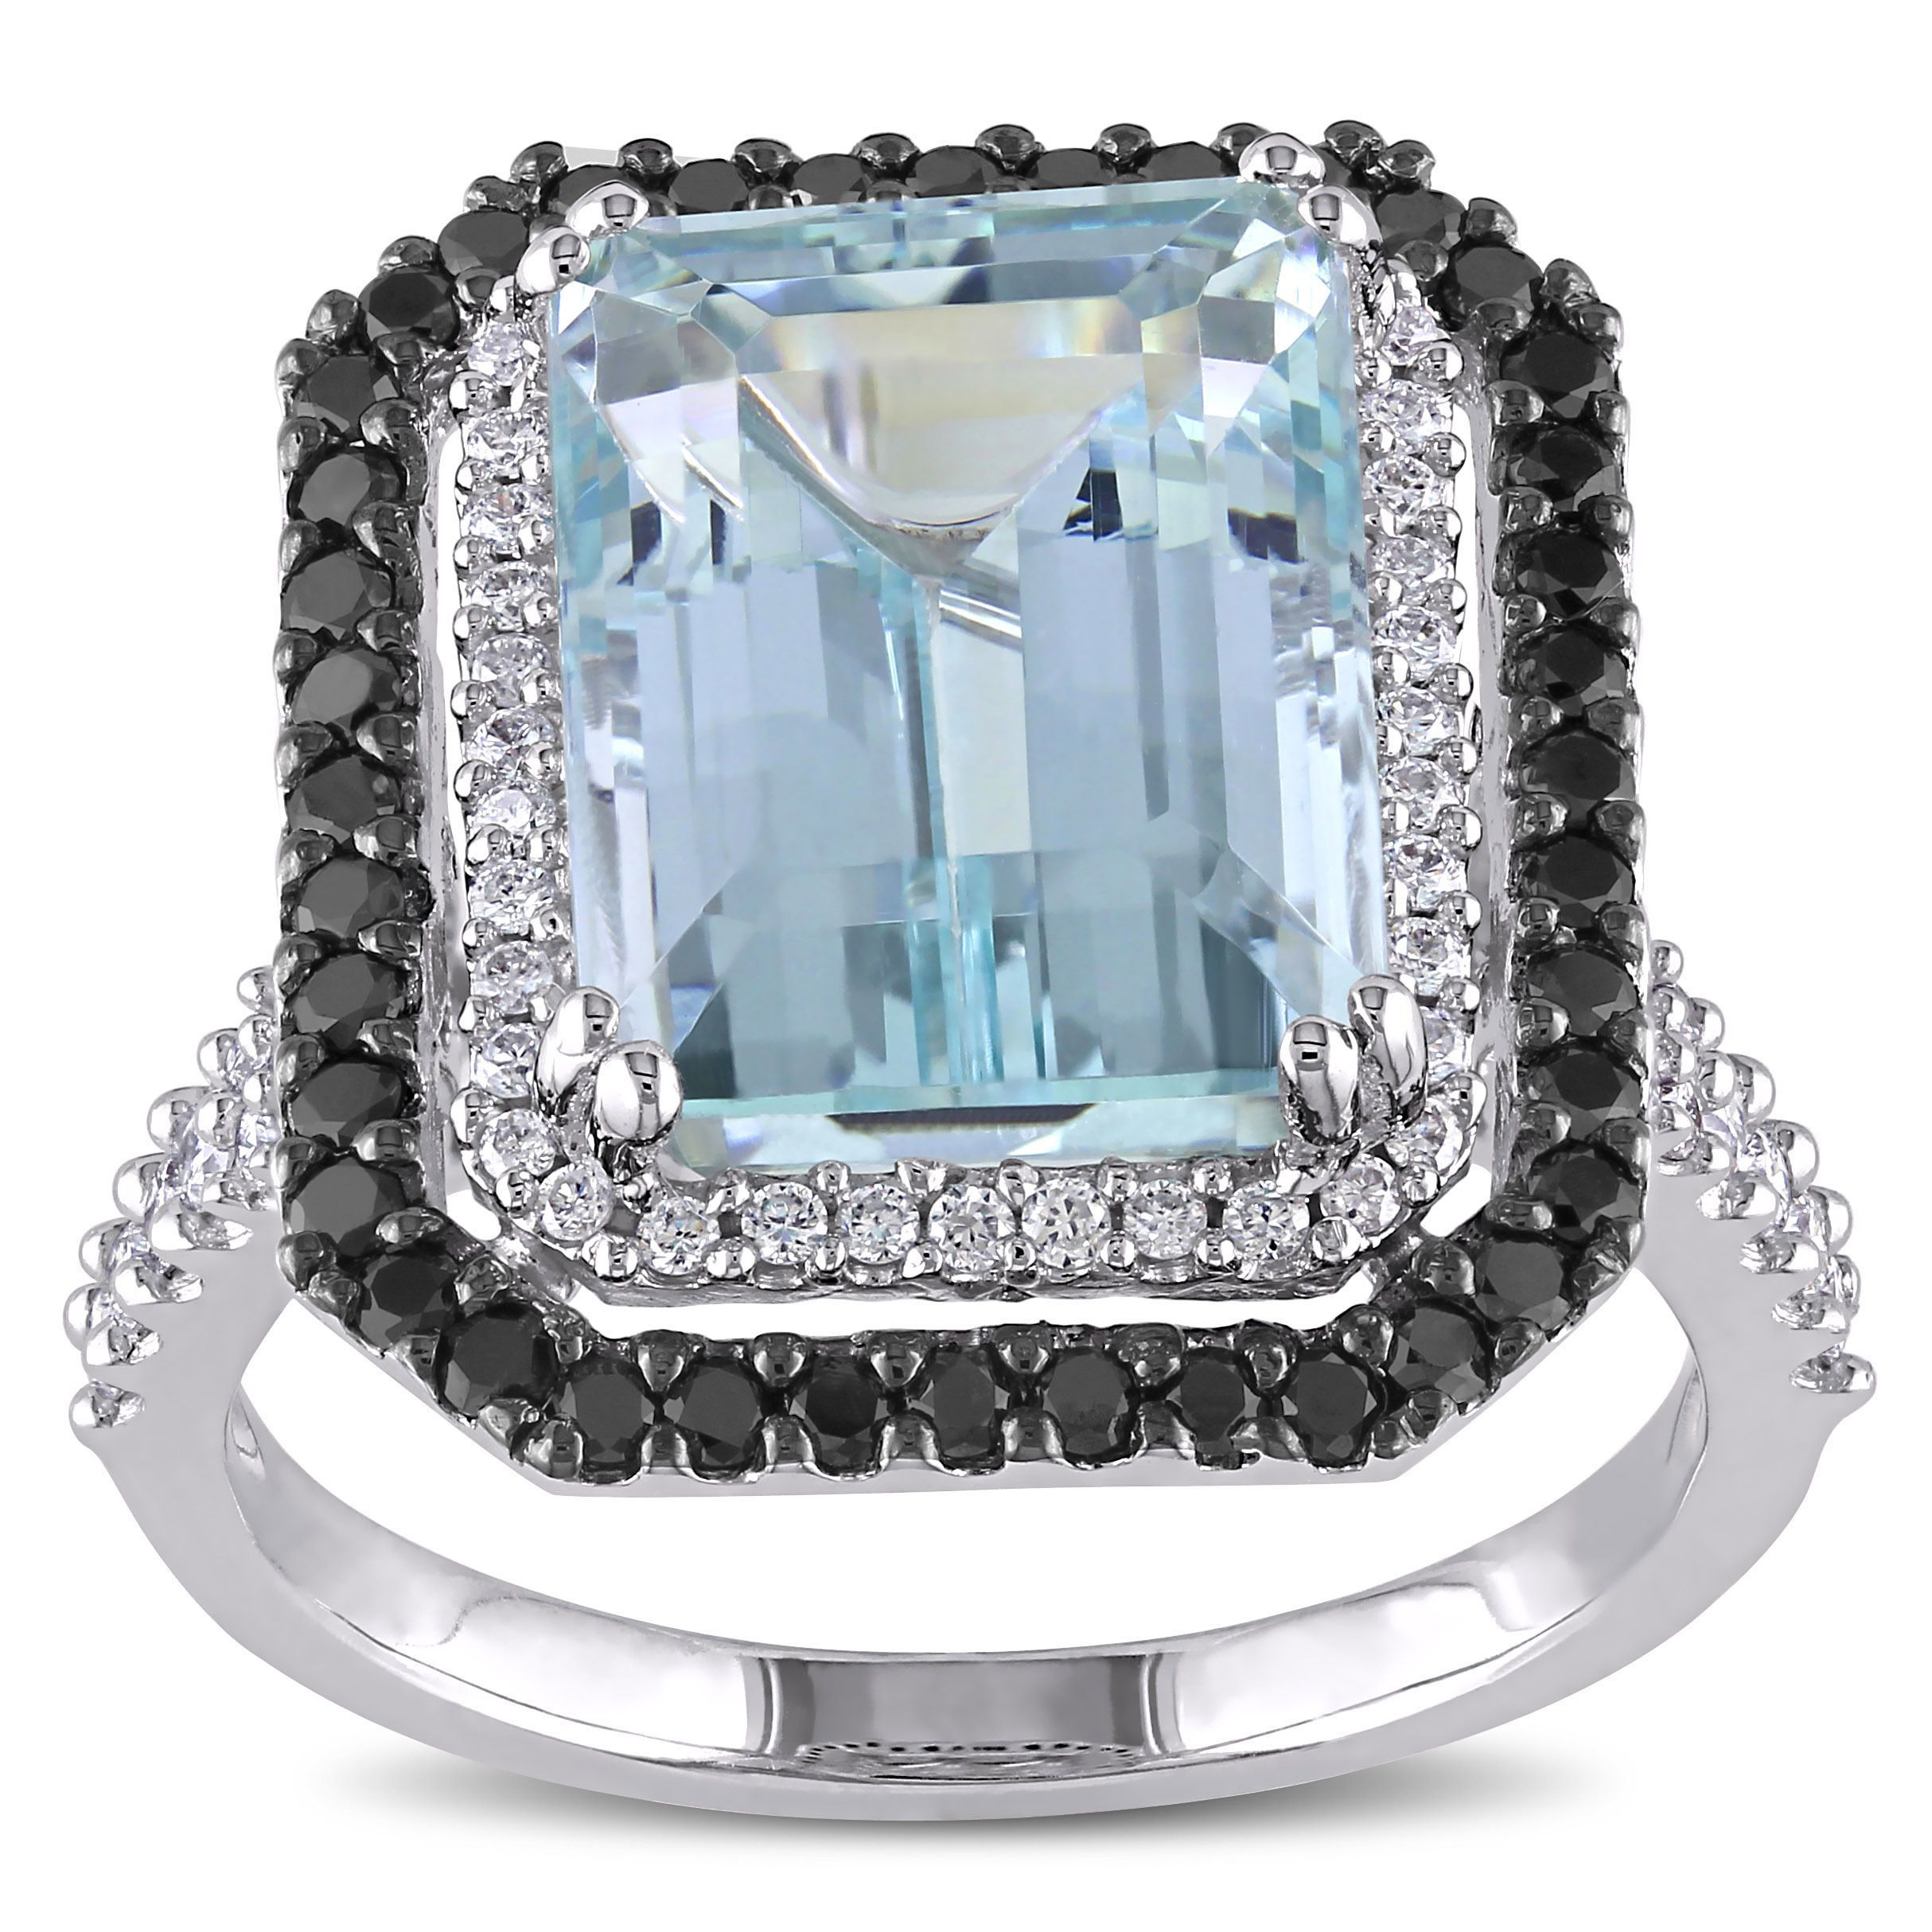 this engagement pear diamond diamonds carats rare octagon golconda rings top iuysfdh ring ms wedding cut vs promise